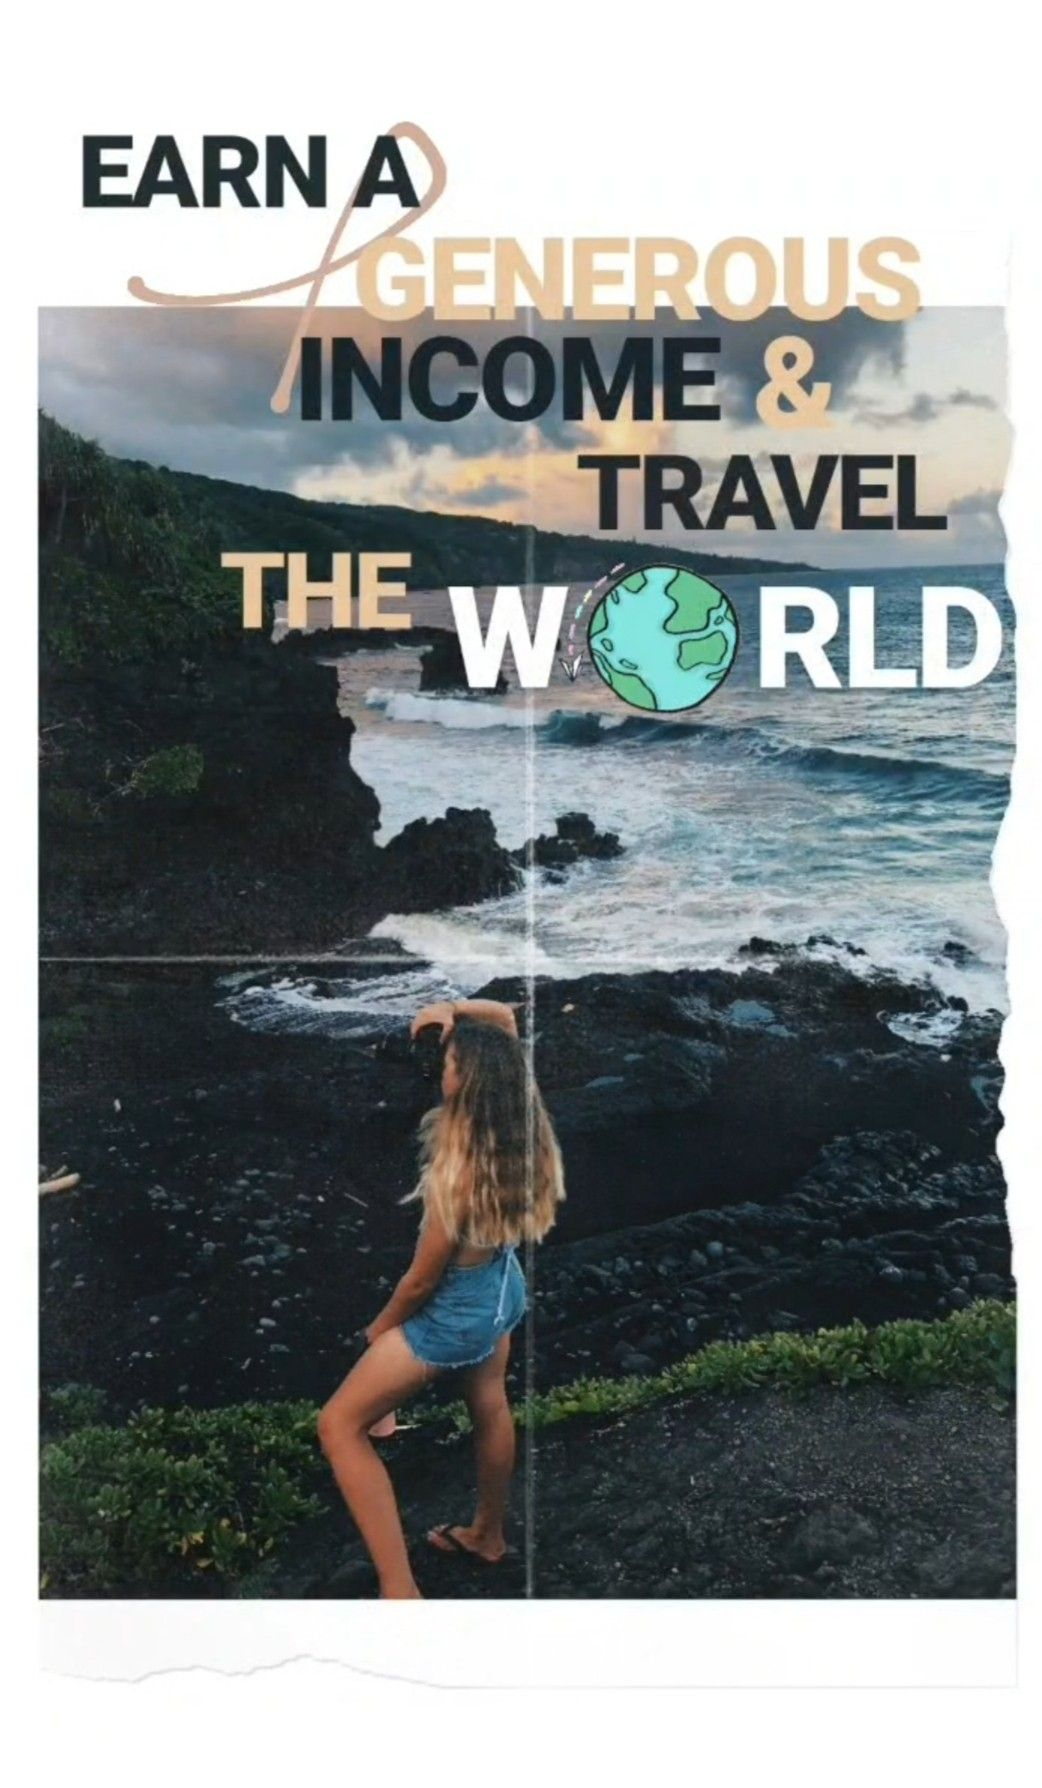 How To Travel The World And Make A Generous Income Online Freedom Travel Travel Travel Lifestyle